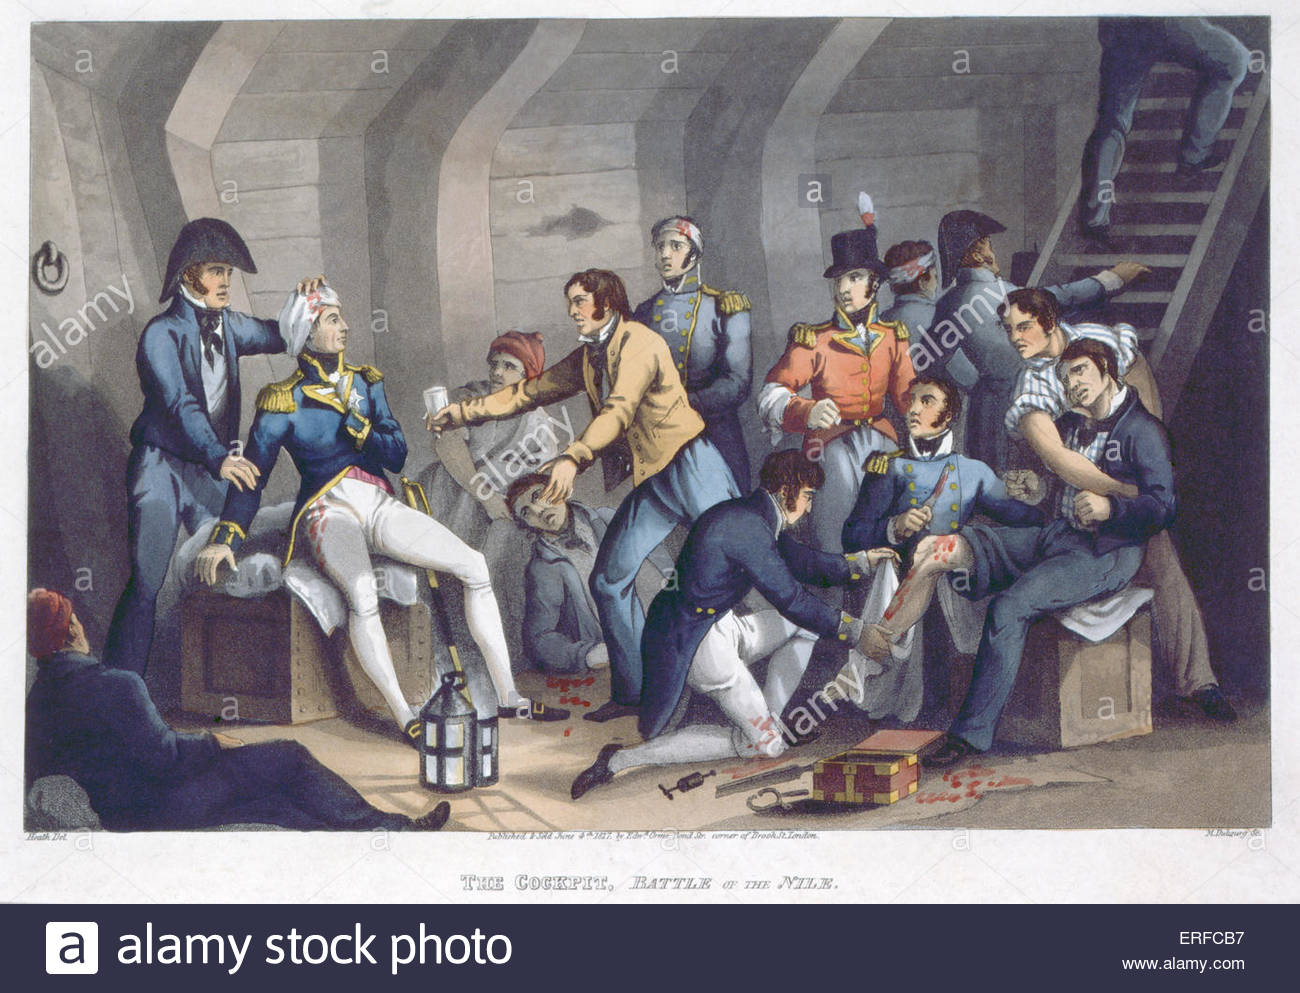 Admiral Lord Nelson in 'The Cockpit, Battle of the Nile'. Published 4th June 1817 by Edward Orme. - Stock Image